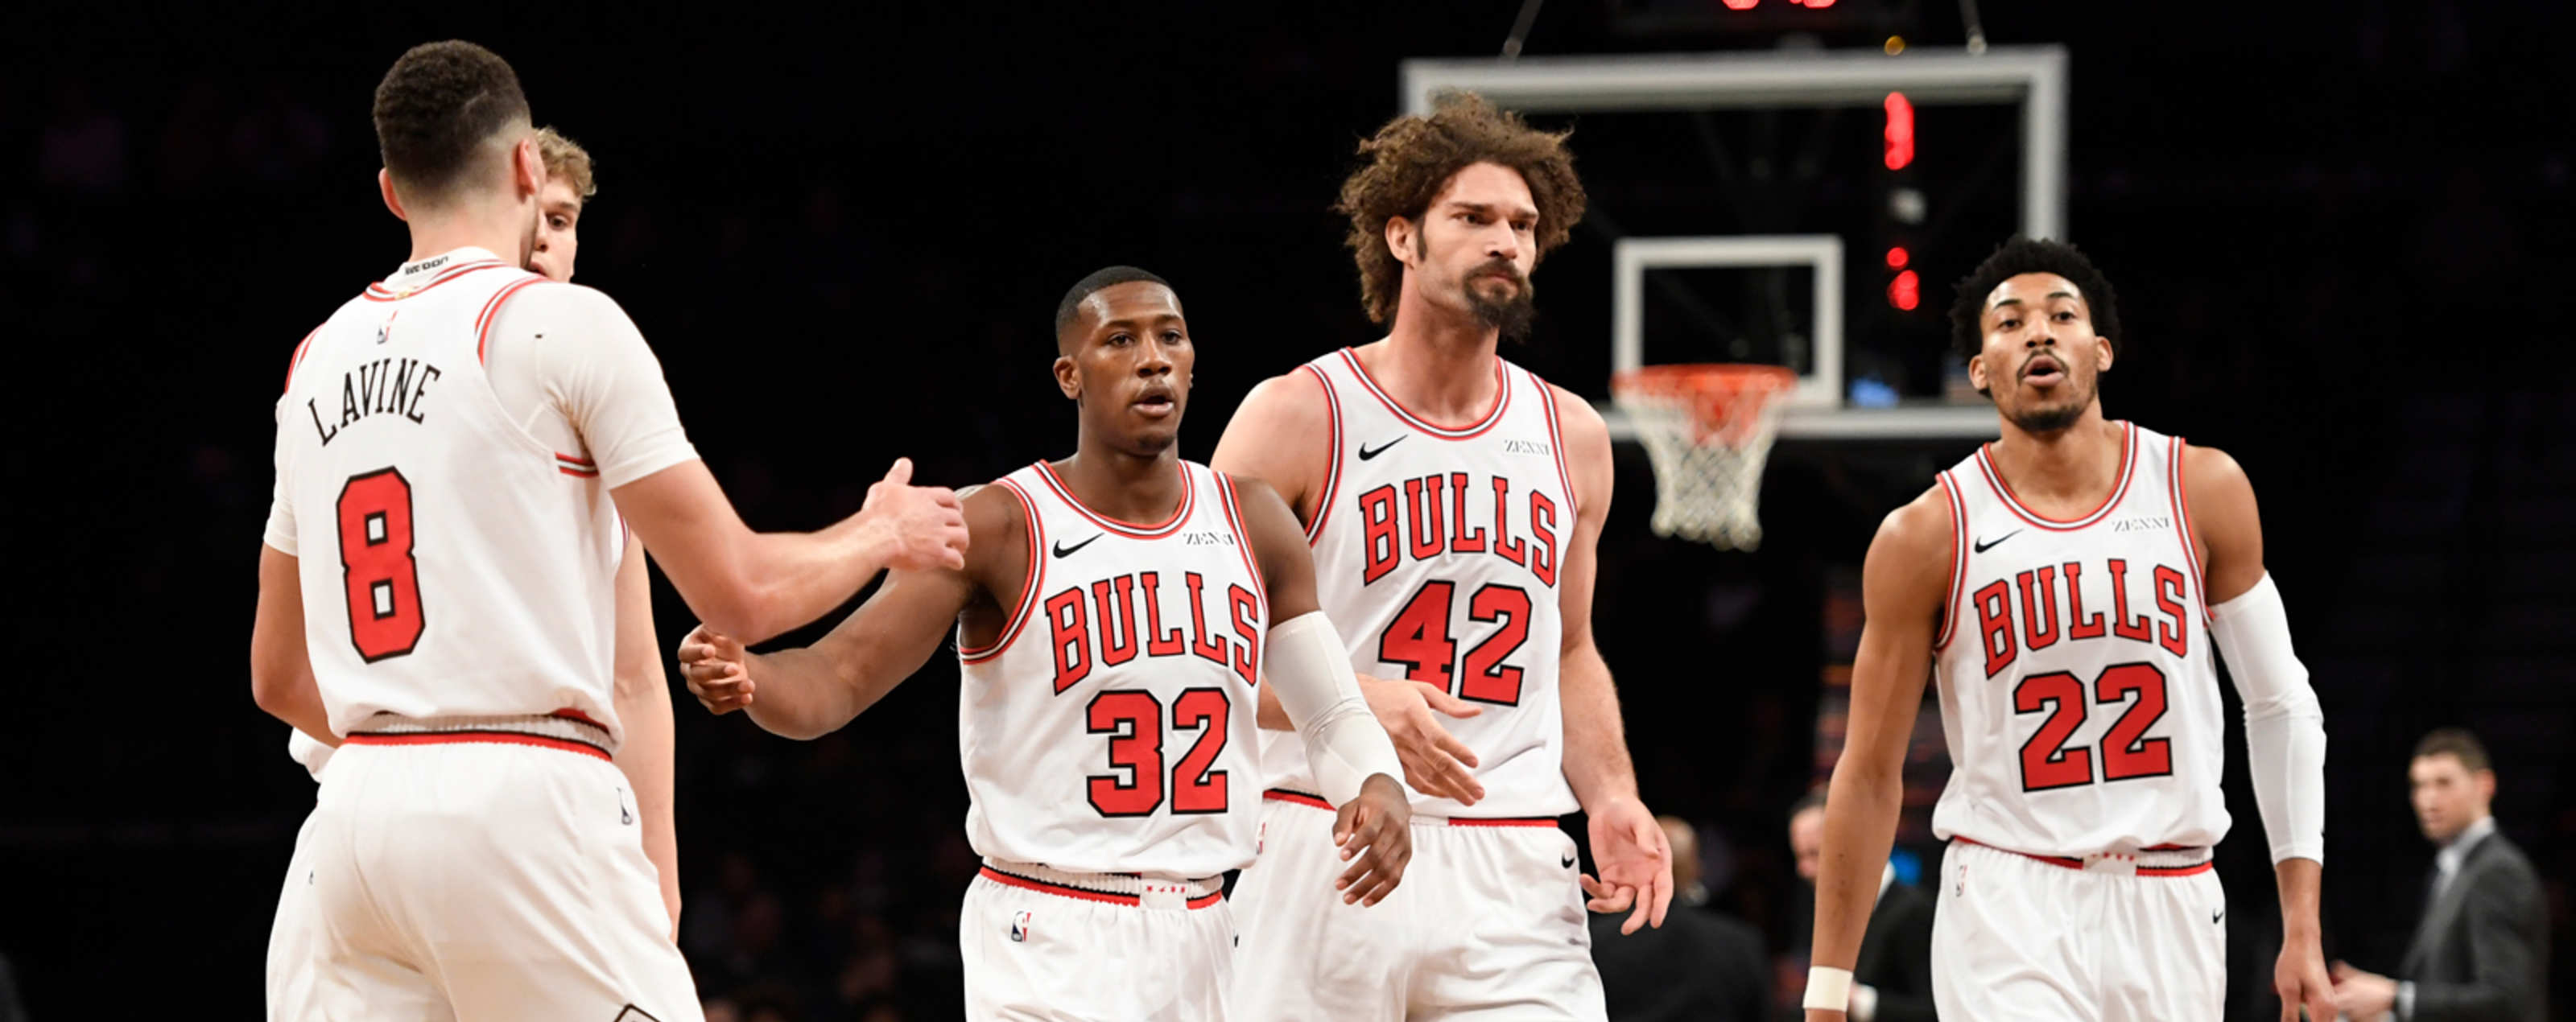 The Chicago Bulls react during a timeout during the first half of the game against the Brooklyn Nets at Barclays Center on February 08, 2019 in the Brooklyn borough of New York City.